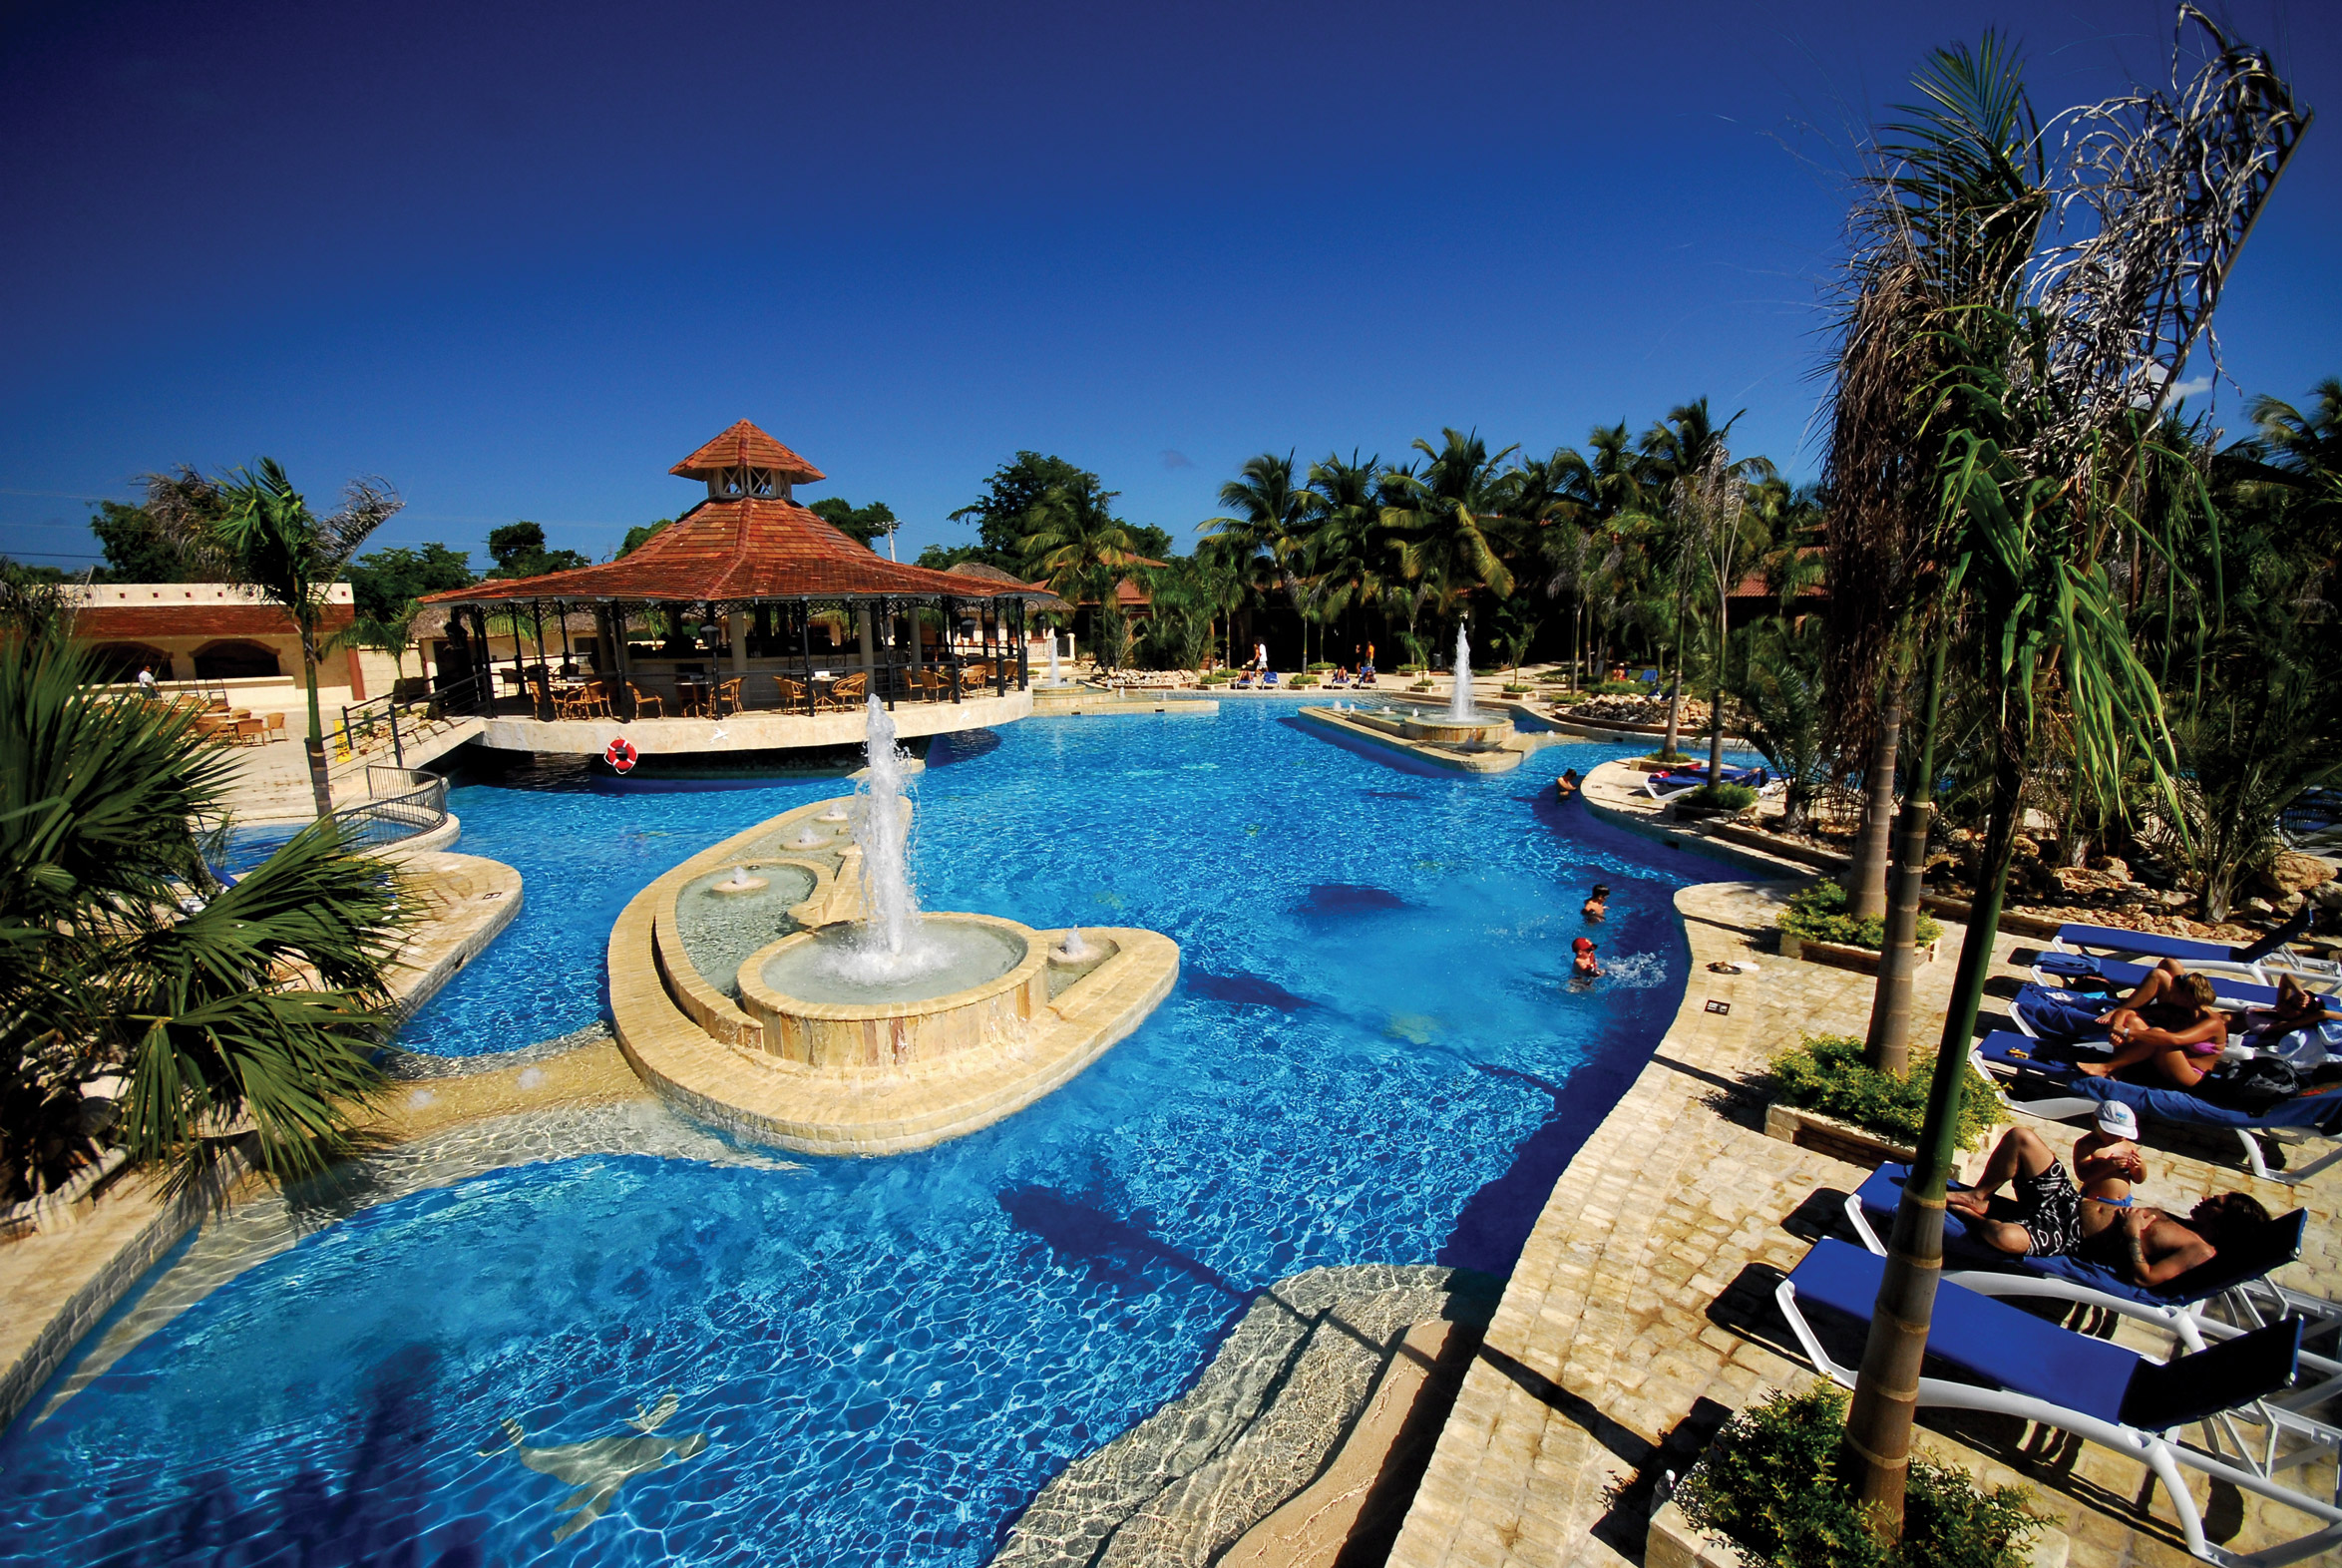 IFA Bavaro Village Resort and Spa